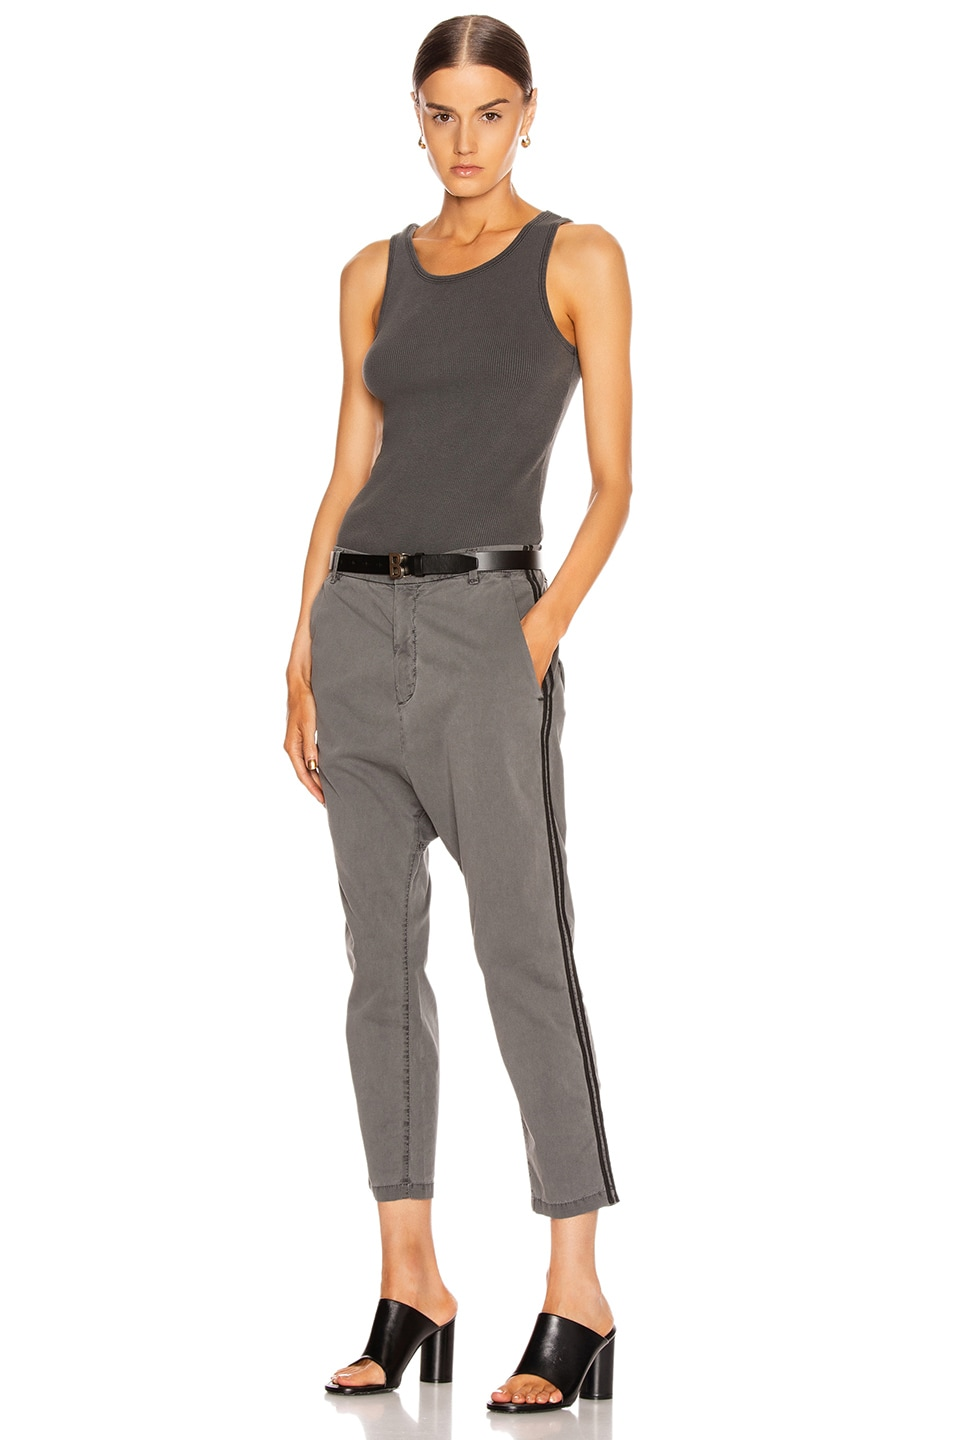 Image 5 of NILI LOTAN Paris Pant with Double Tape in Charcoal & Black